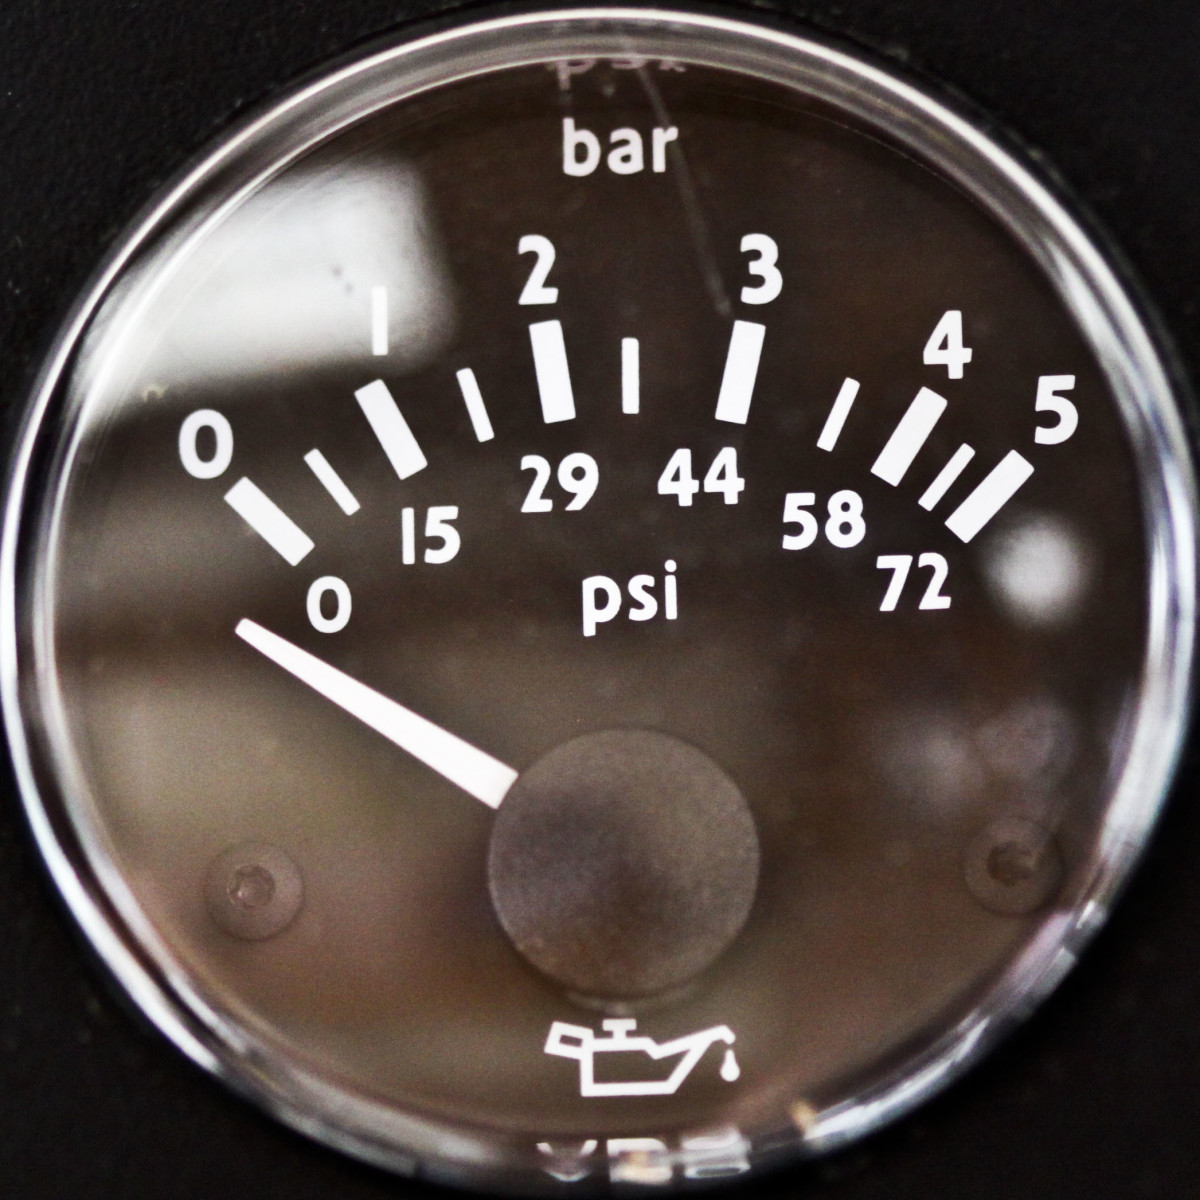 There are several causes for low oil pressure.